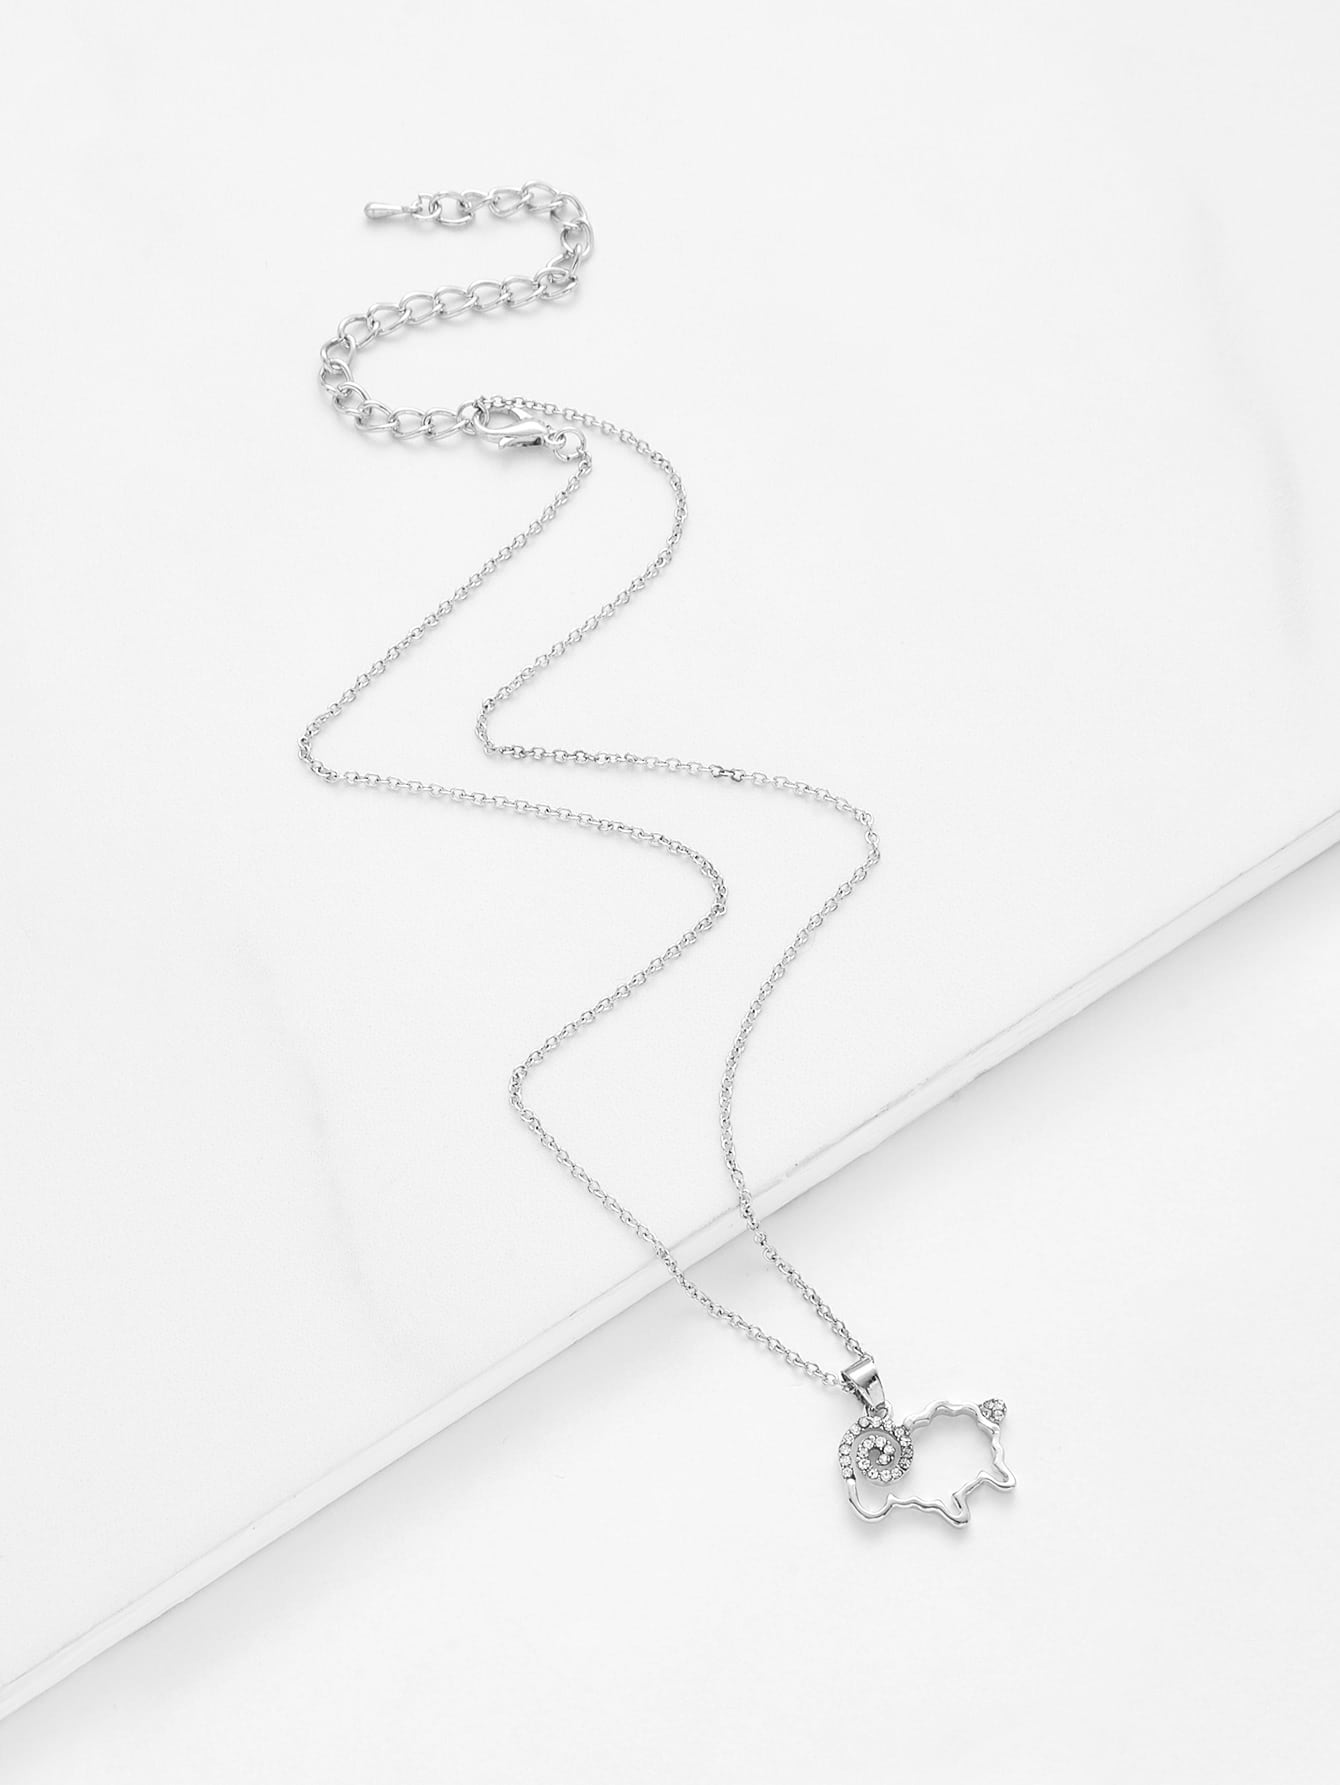 Rhinestone Detail Sheep Pendant Chain Necklace link chain rhinestone pendant necklace